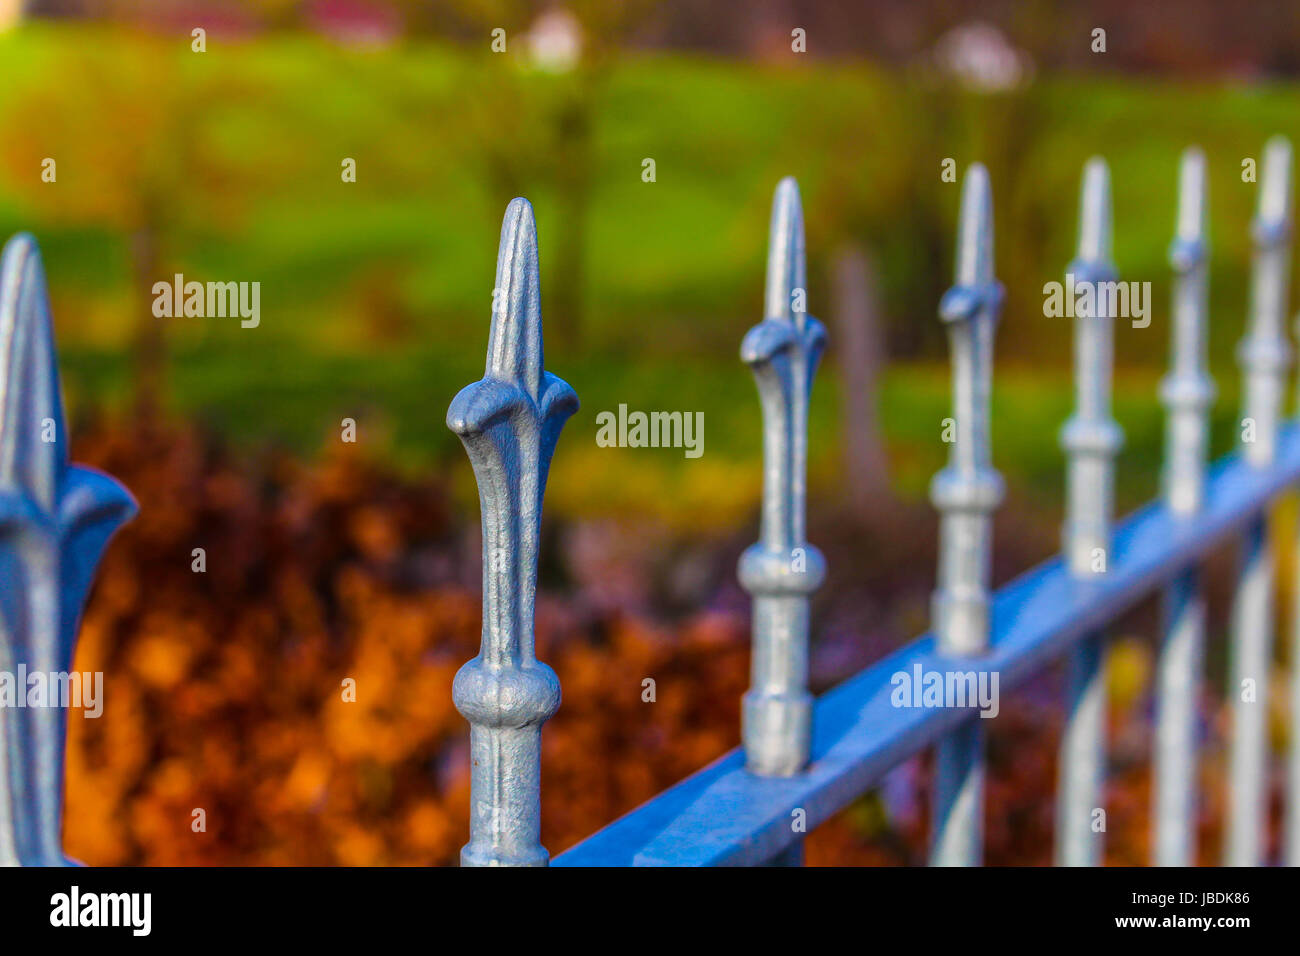 An Image of a fence - Stock Image